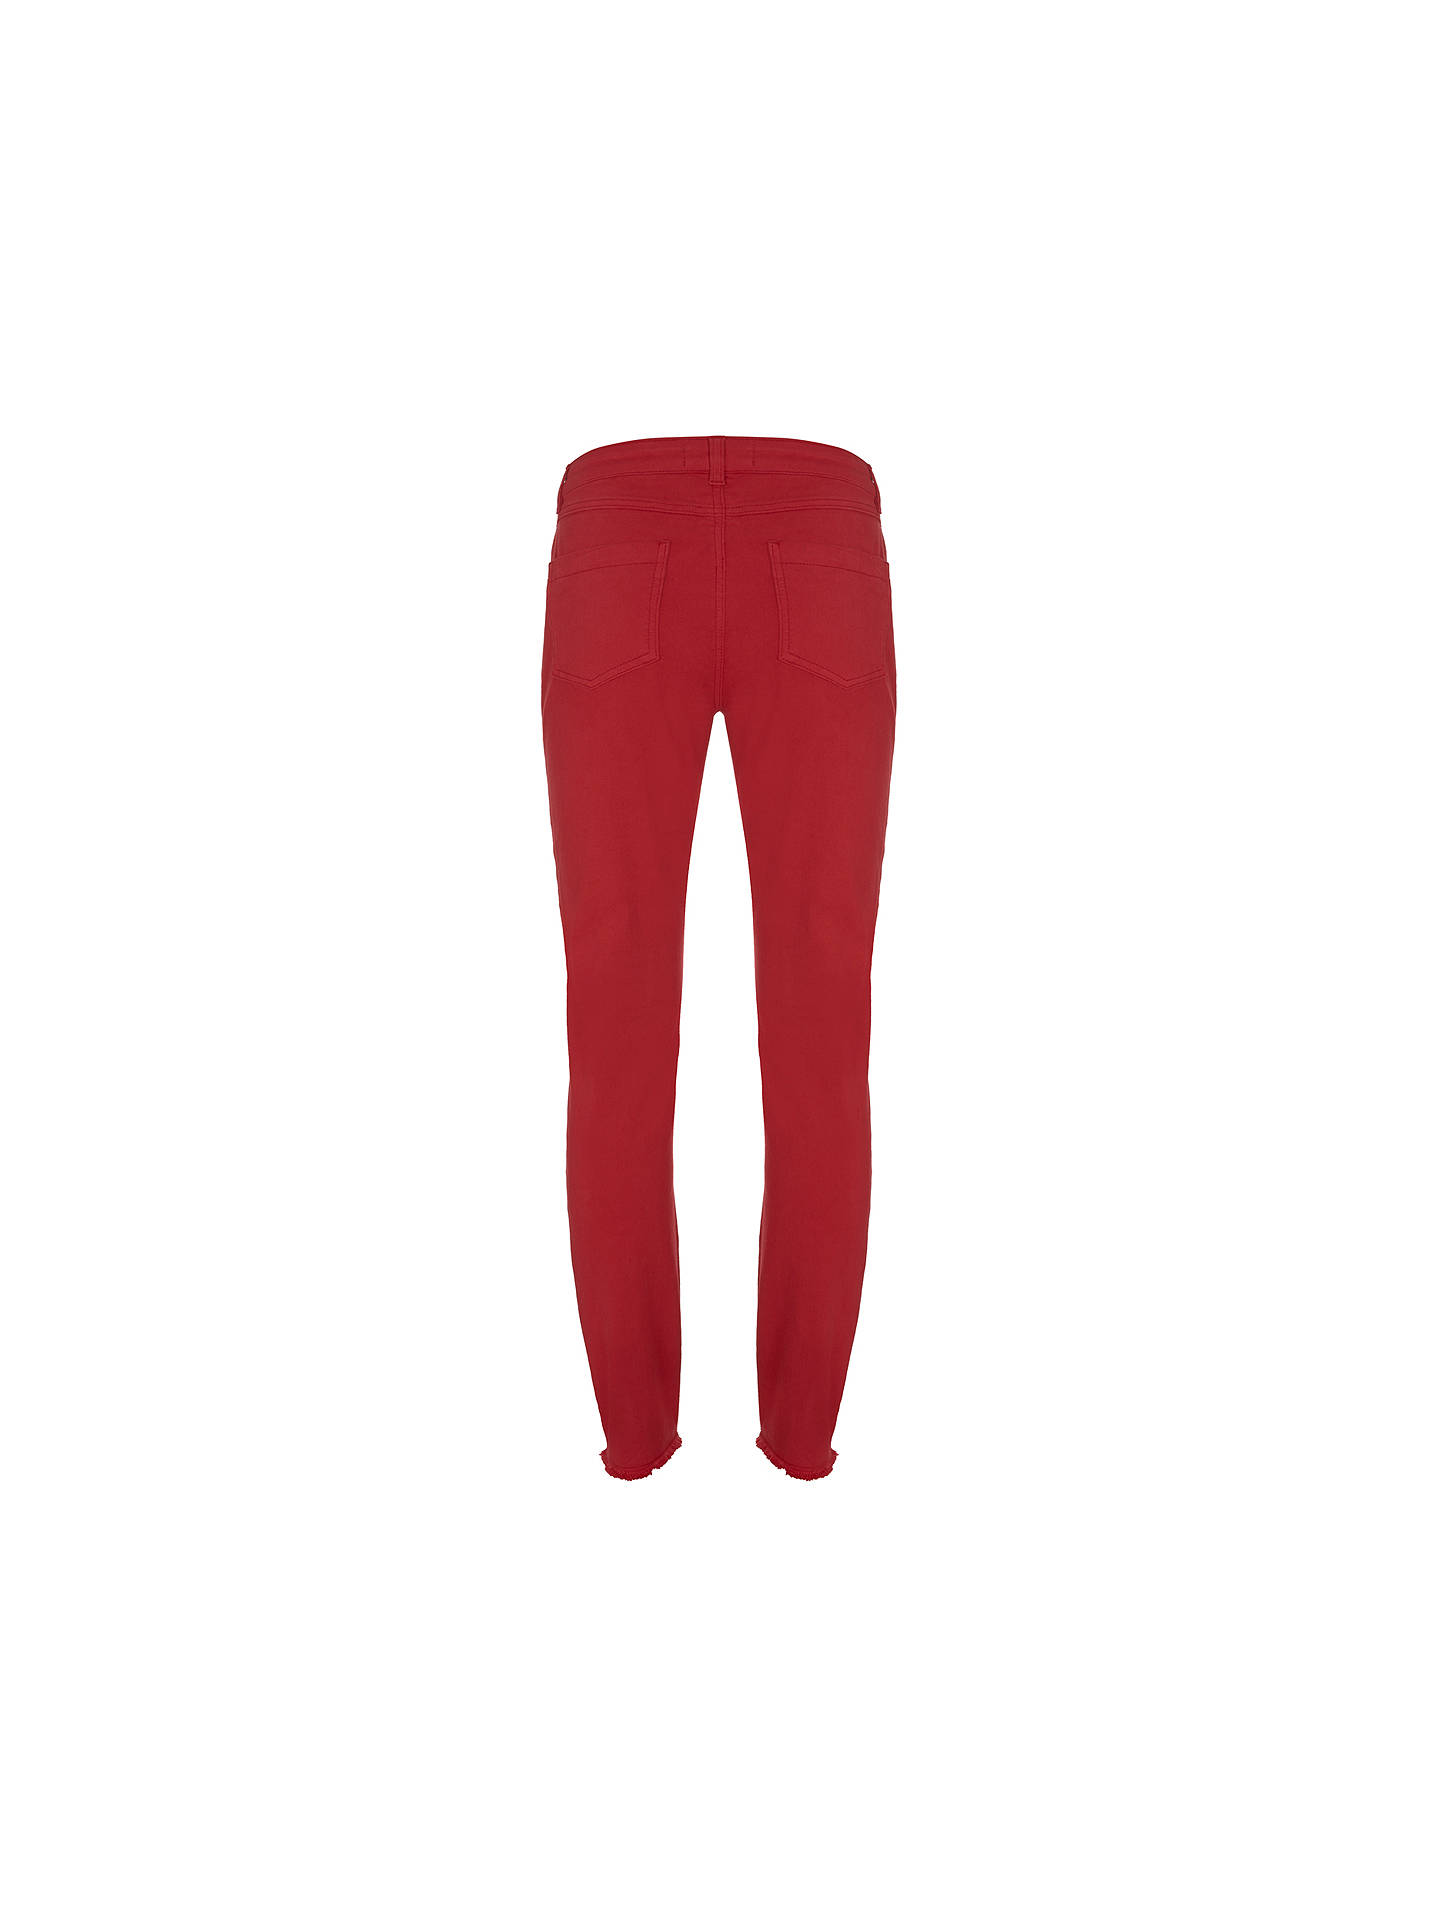 BuyMint Velvet Paxton Skinny Jeans, Red, 6L Online at johnlewis.com